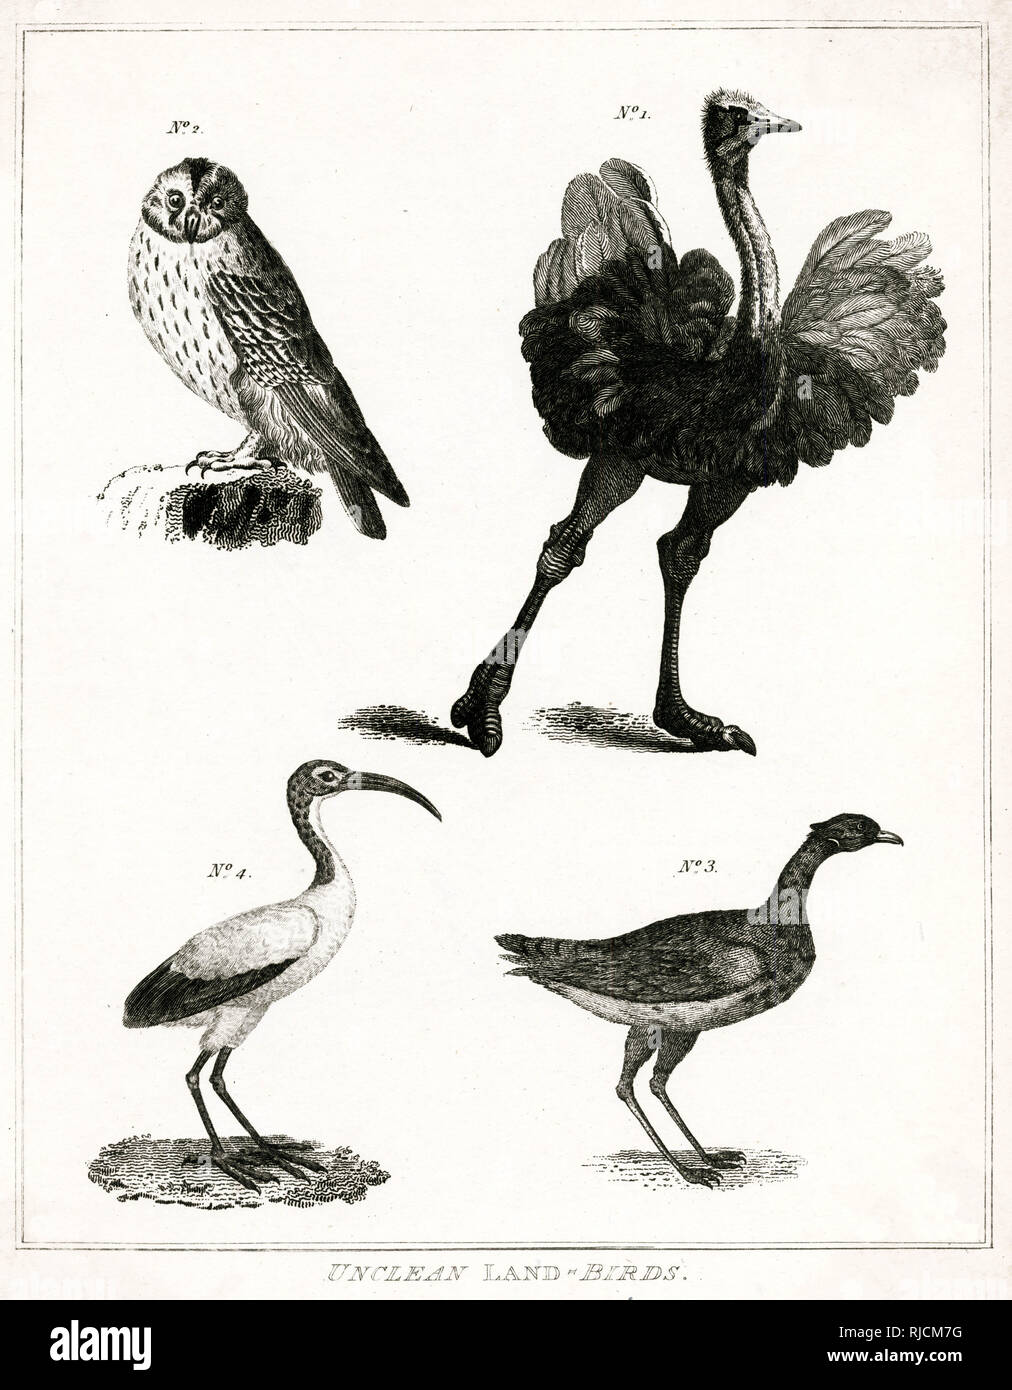 Engraving of unclean (non - kosher) land birds. The concept of 'impure' or 'unclean' animals, plays a prominent role in Jewish law that specifies which foods are allowed (kosher) and which are not allowed to be eaten. - Stock Image